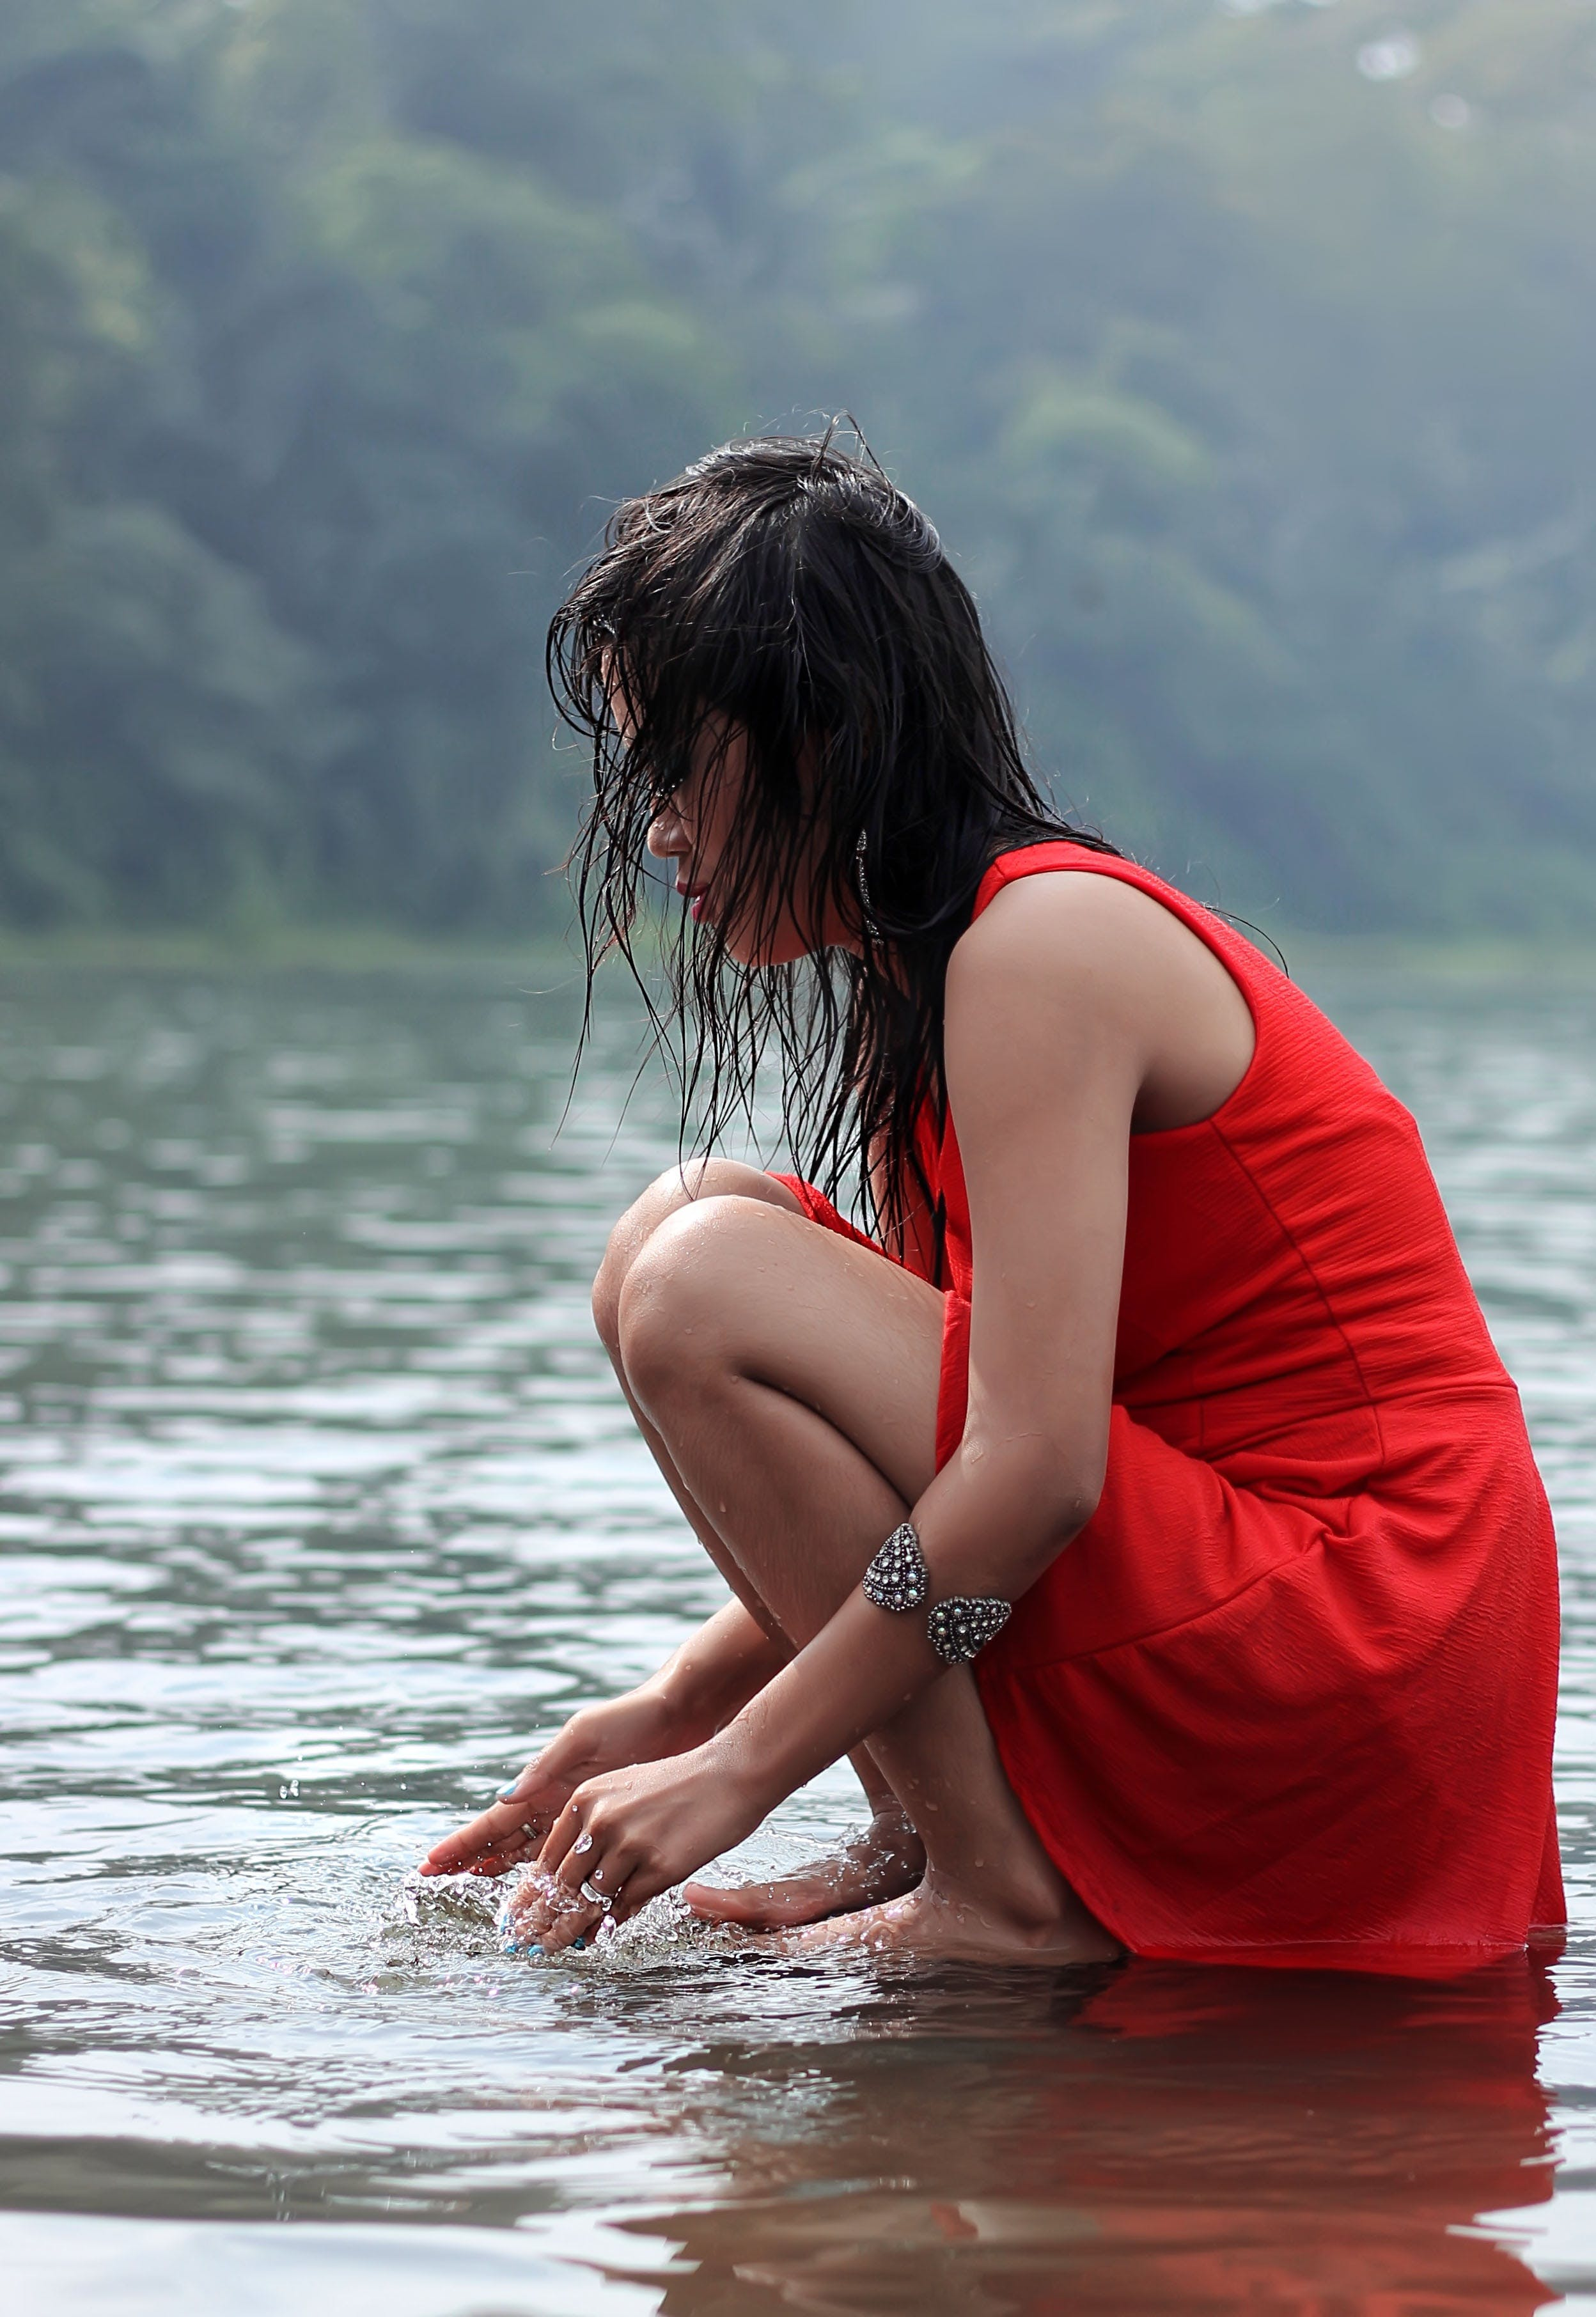 Woman Sitting on Water